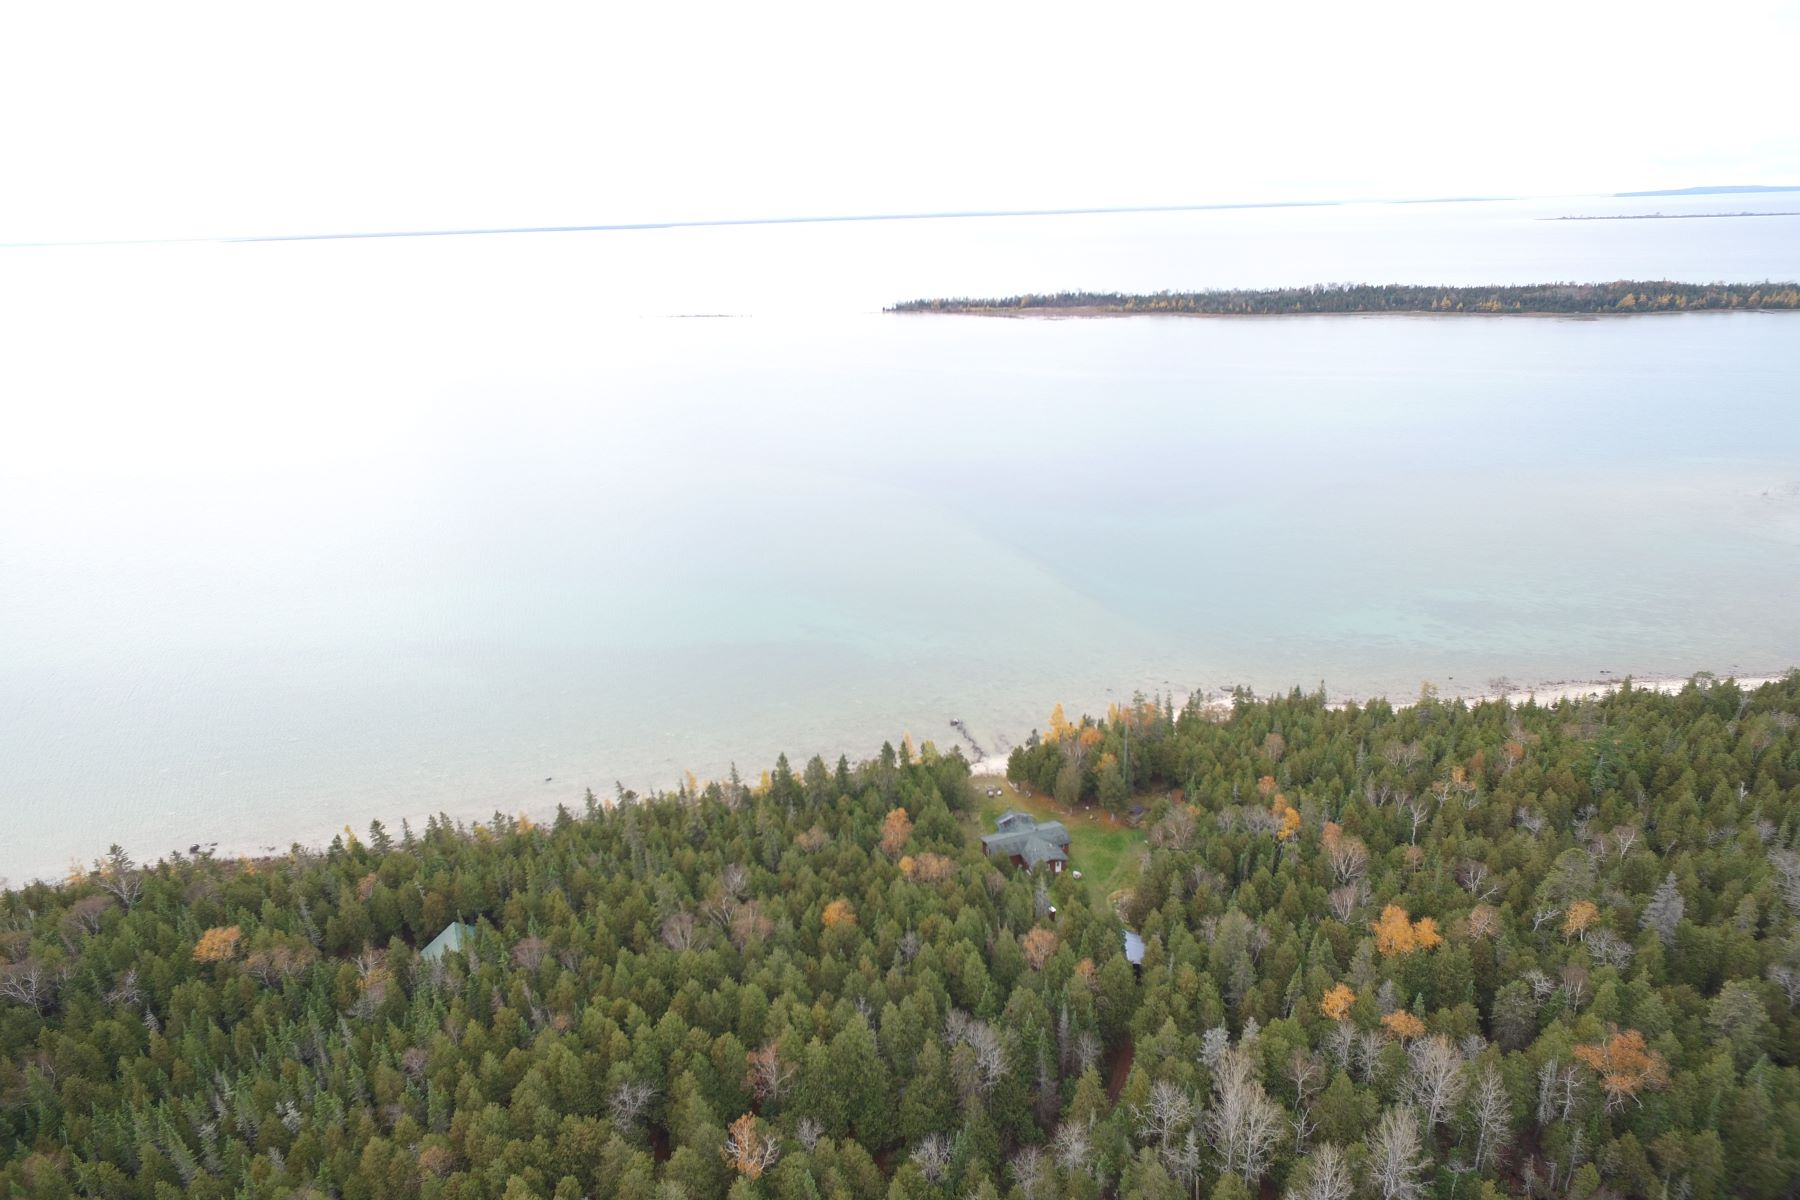 Land for Sale at Acreage on Marquette Island 5132 S. Halfway Lane & 608 W. Kromiller Road Cedarville, Michigan 49719 United States